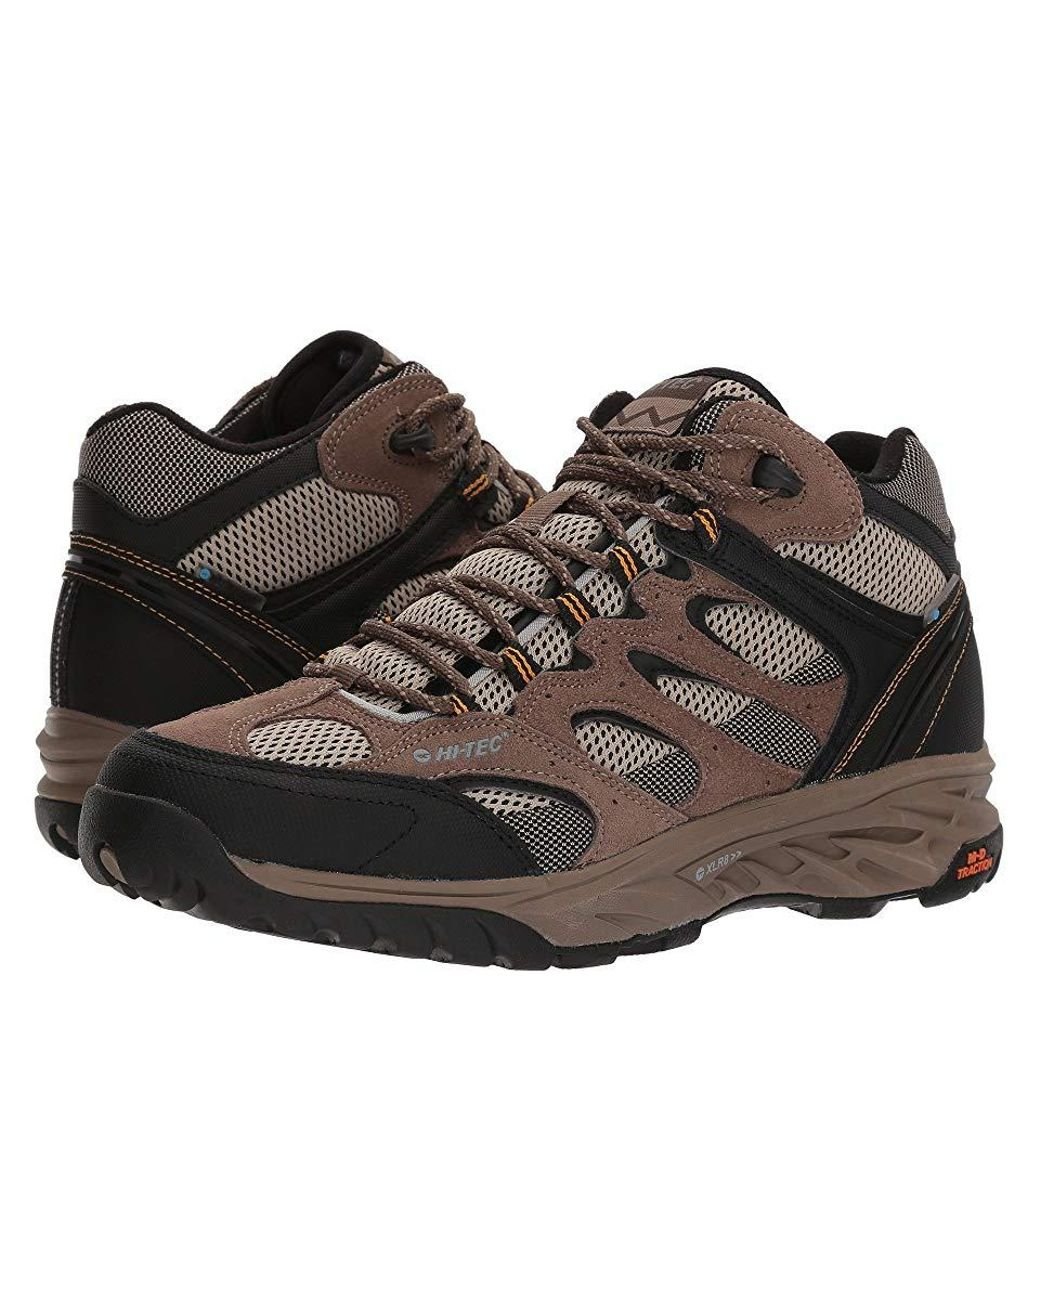 745e711b Hi-Tec V-lite Wildfire Mid I Waterproof (taupe/dune/core Gold) Hiking Boots  in Brown for Men - Save 44% - Lyst